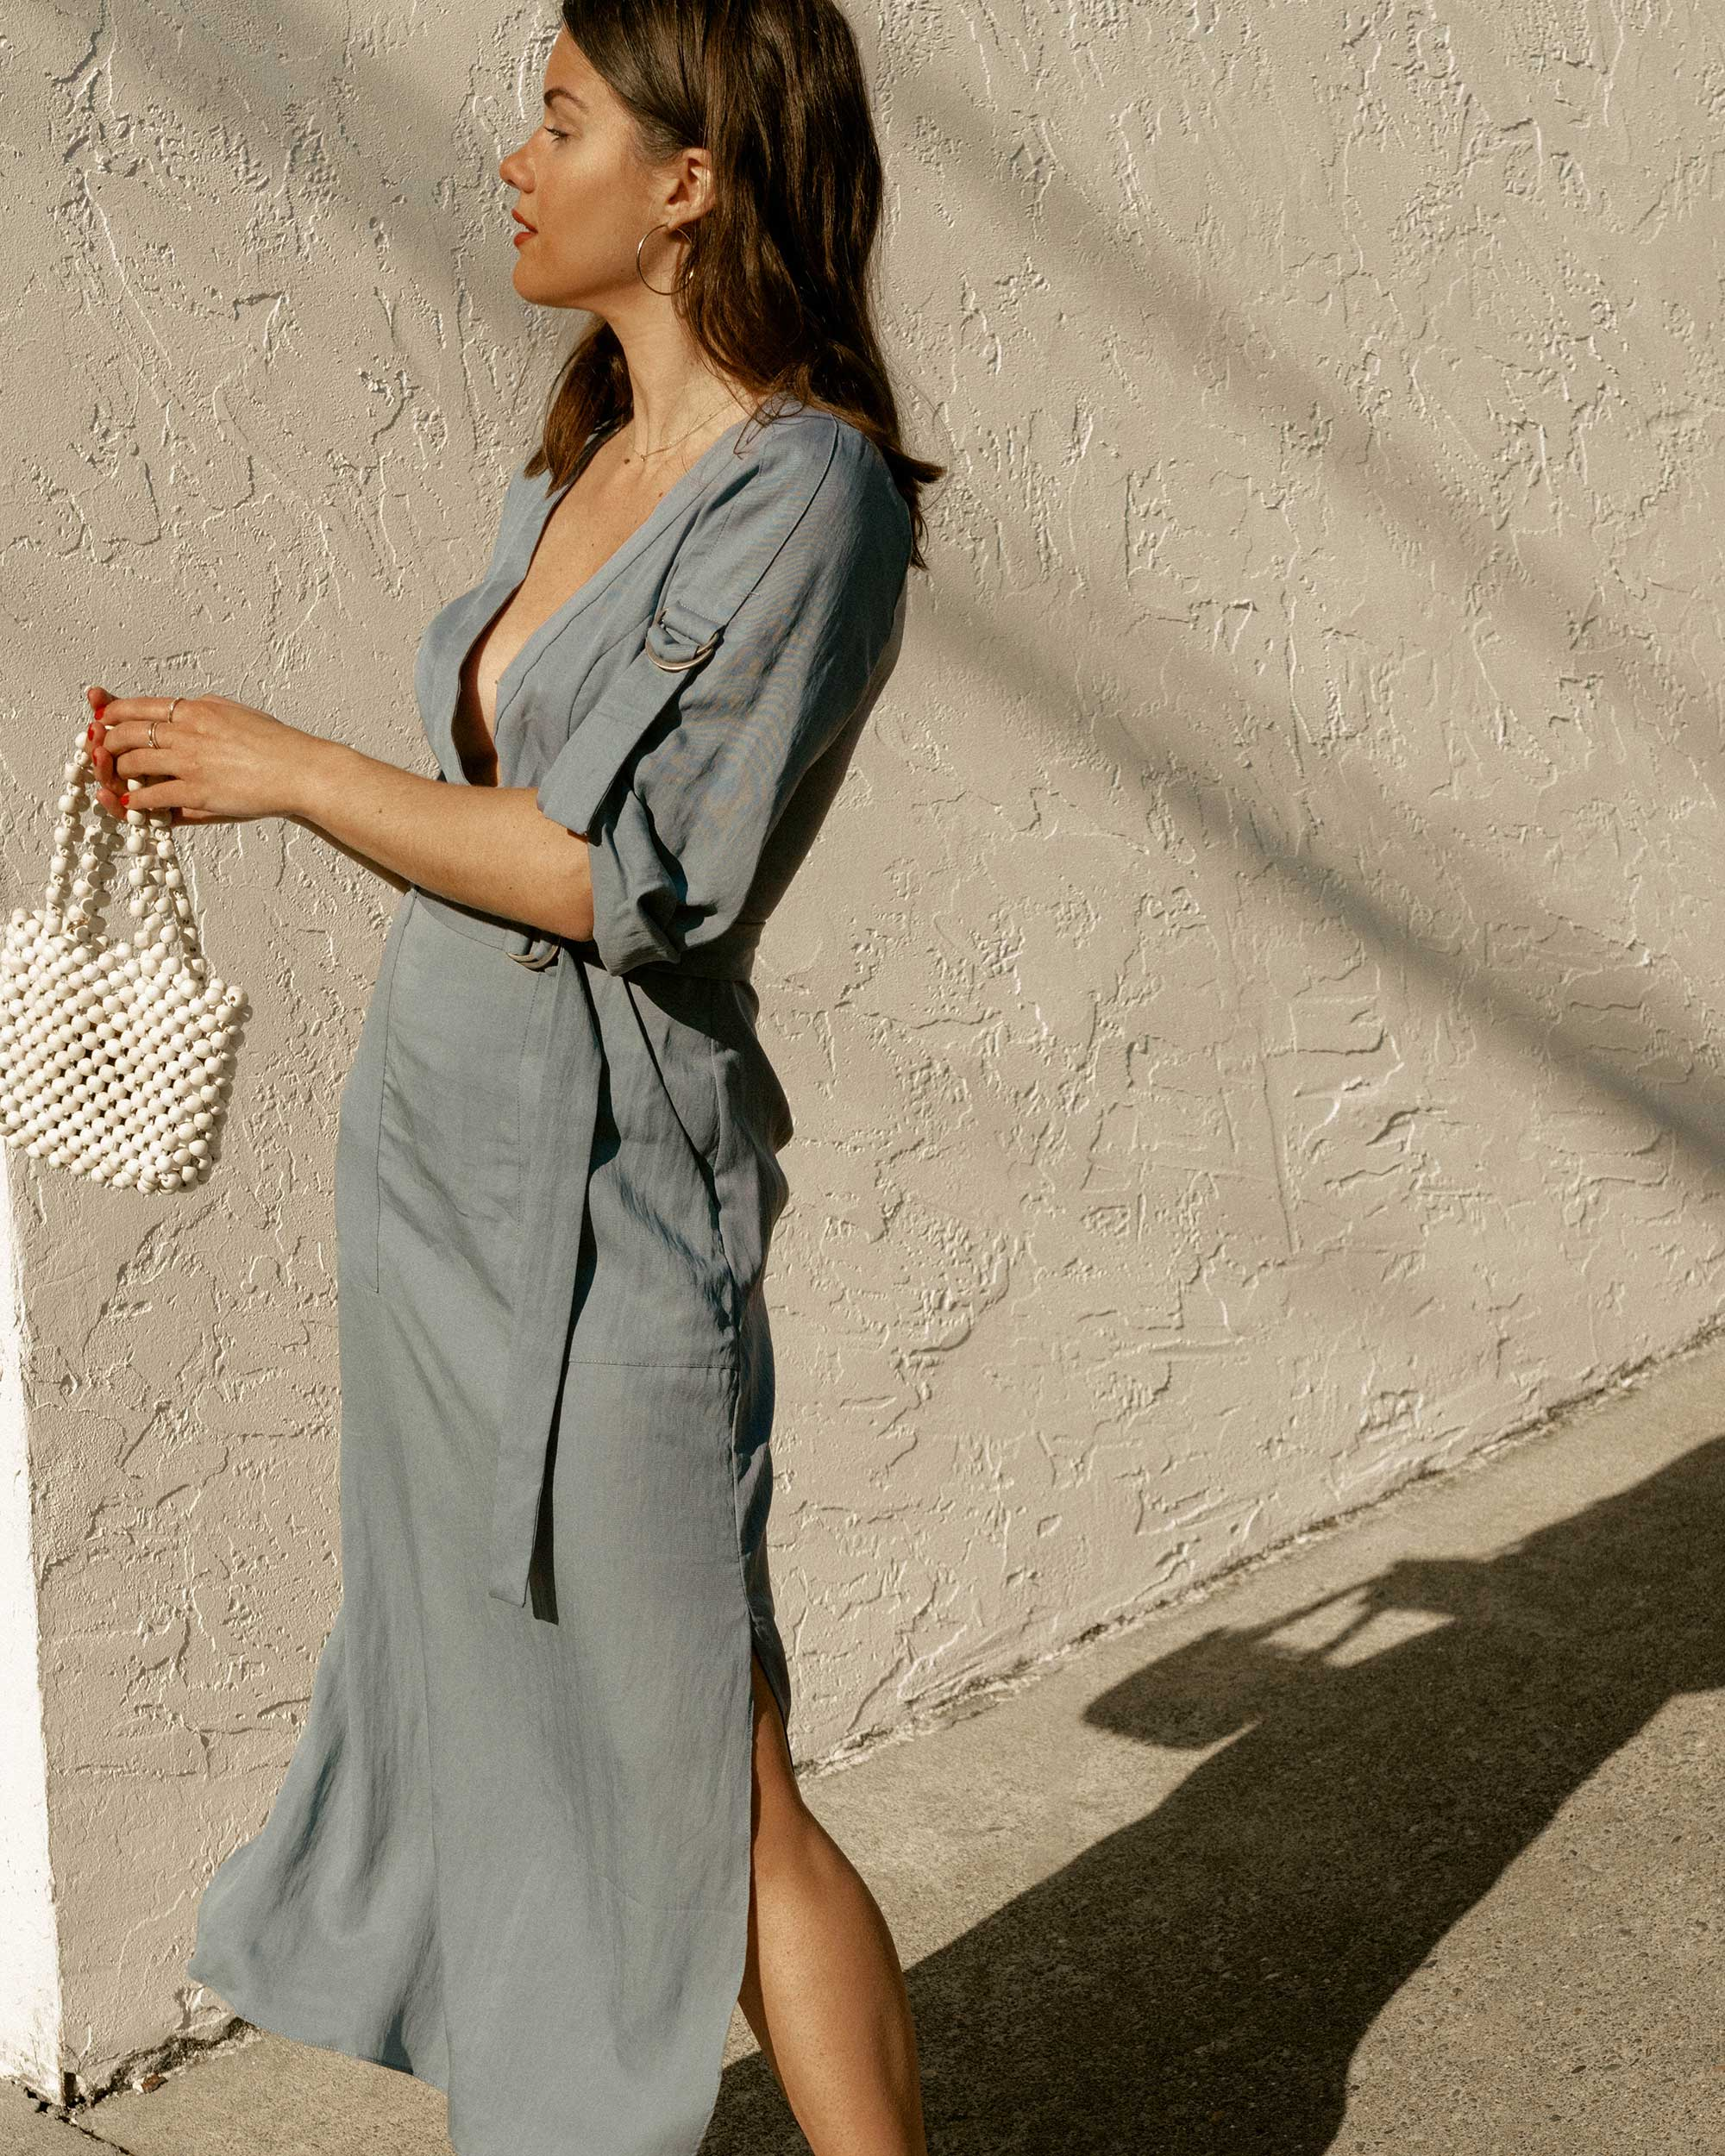 Sarah Butler of Sarah Styles Seattle wears BCBGMAXAZRIA Wrap Trench Dress in for the perfect spring outfit | @sarahchristine5.jpg